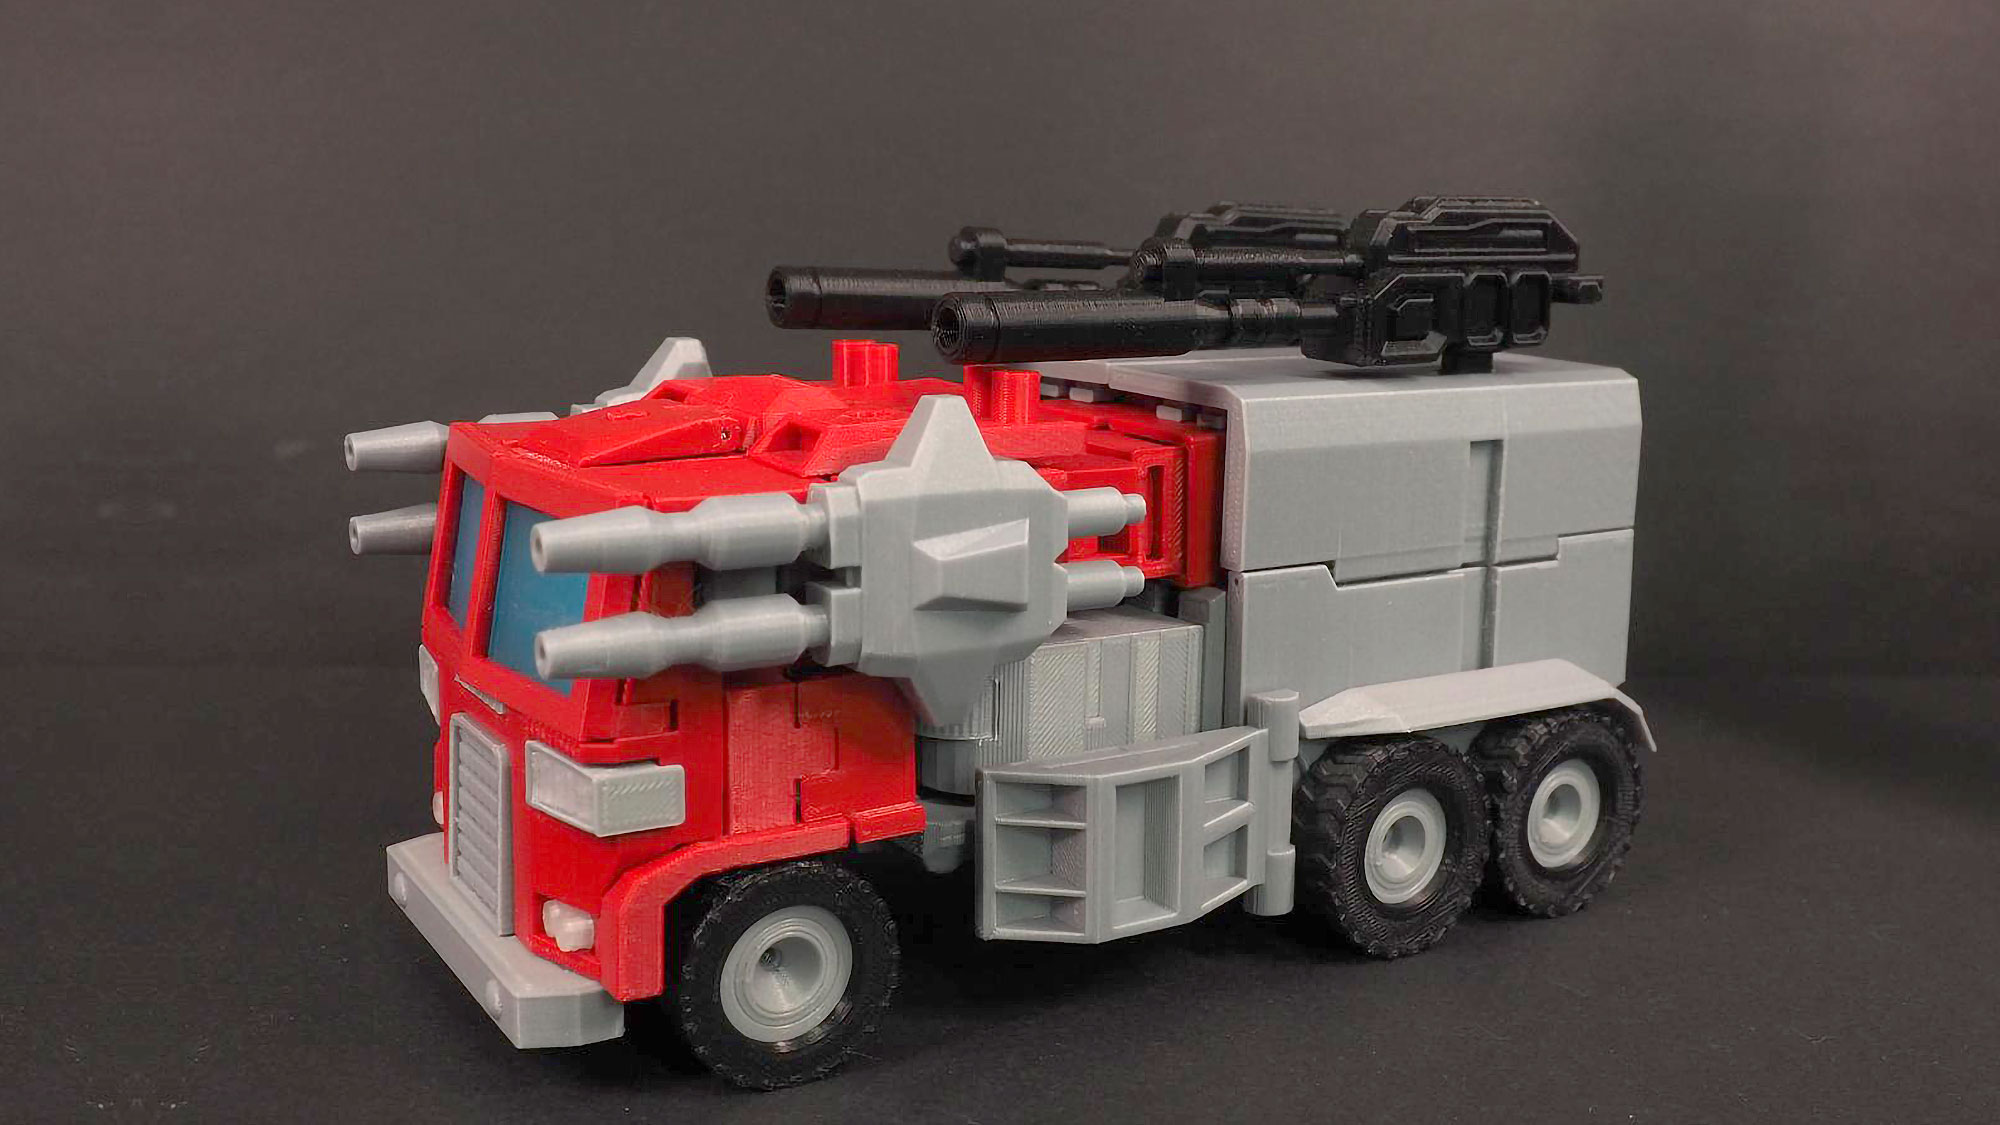 Marvel-inspired Transformers Optimus Prime Figure